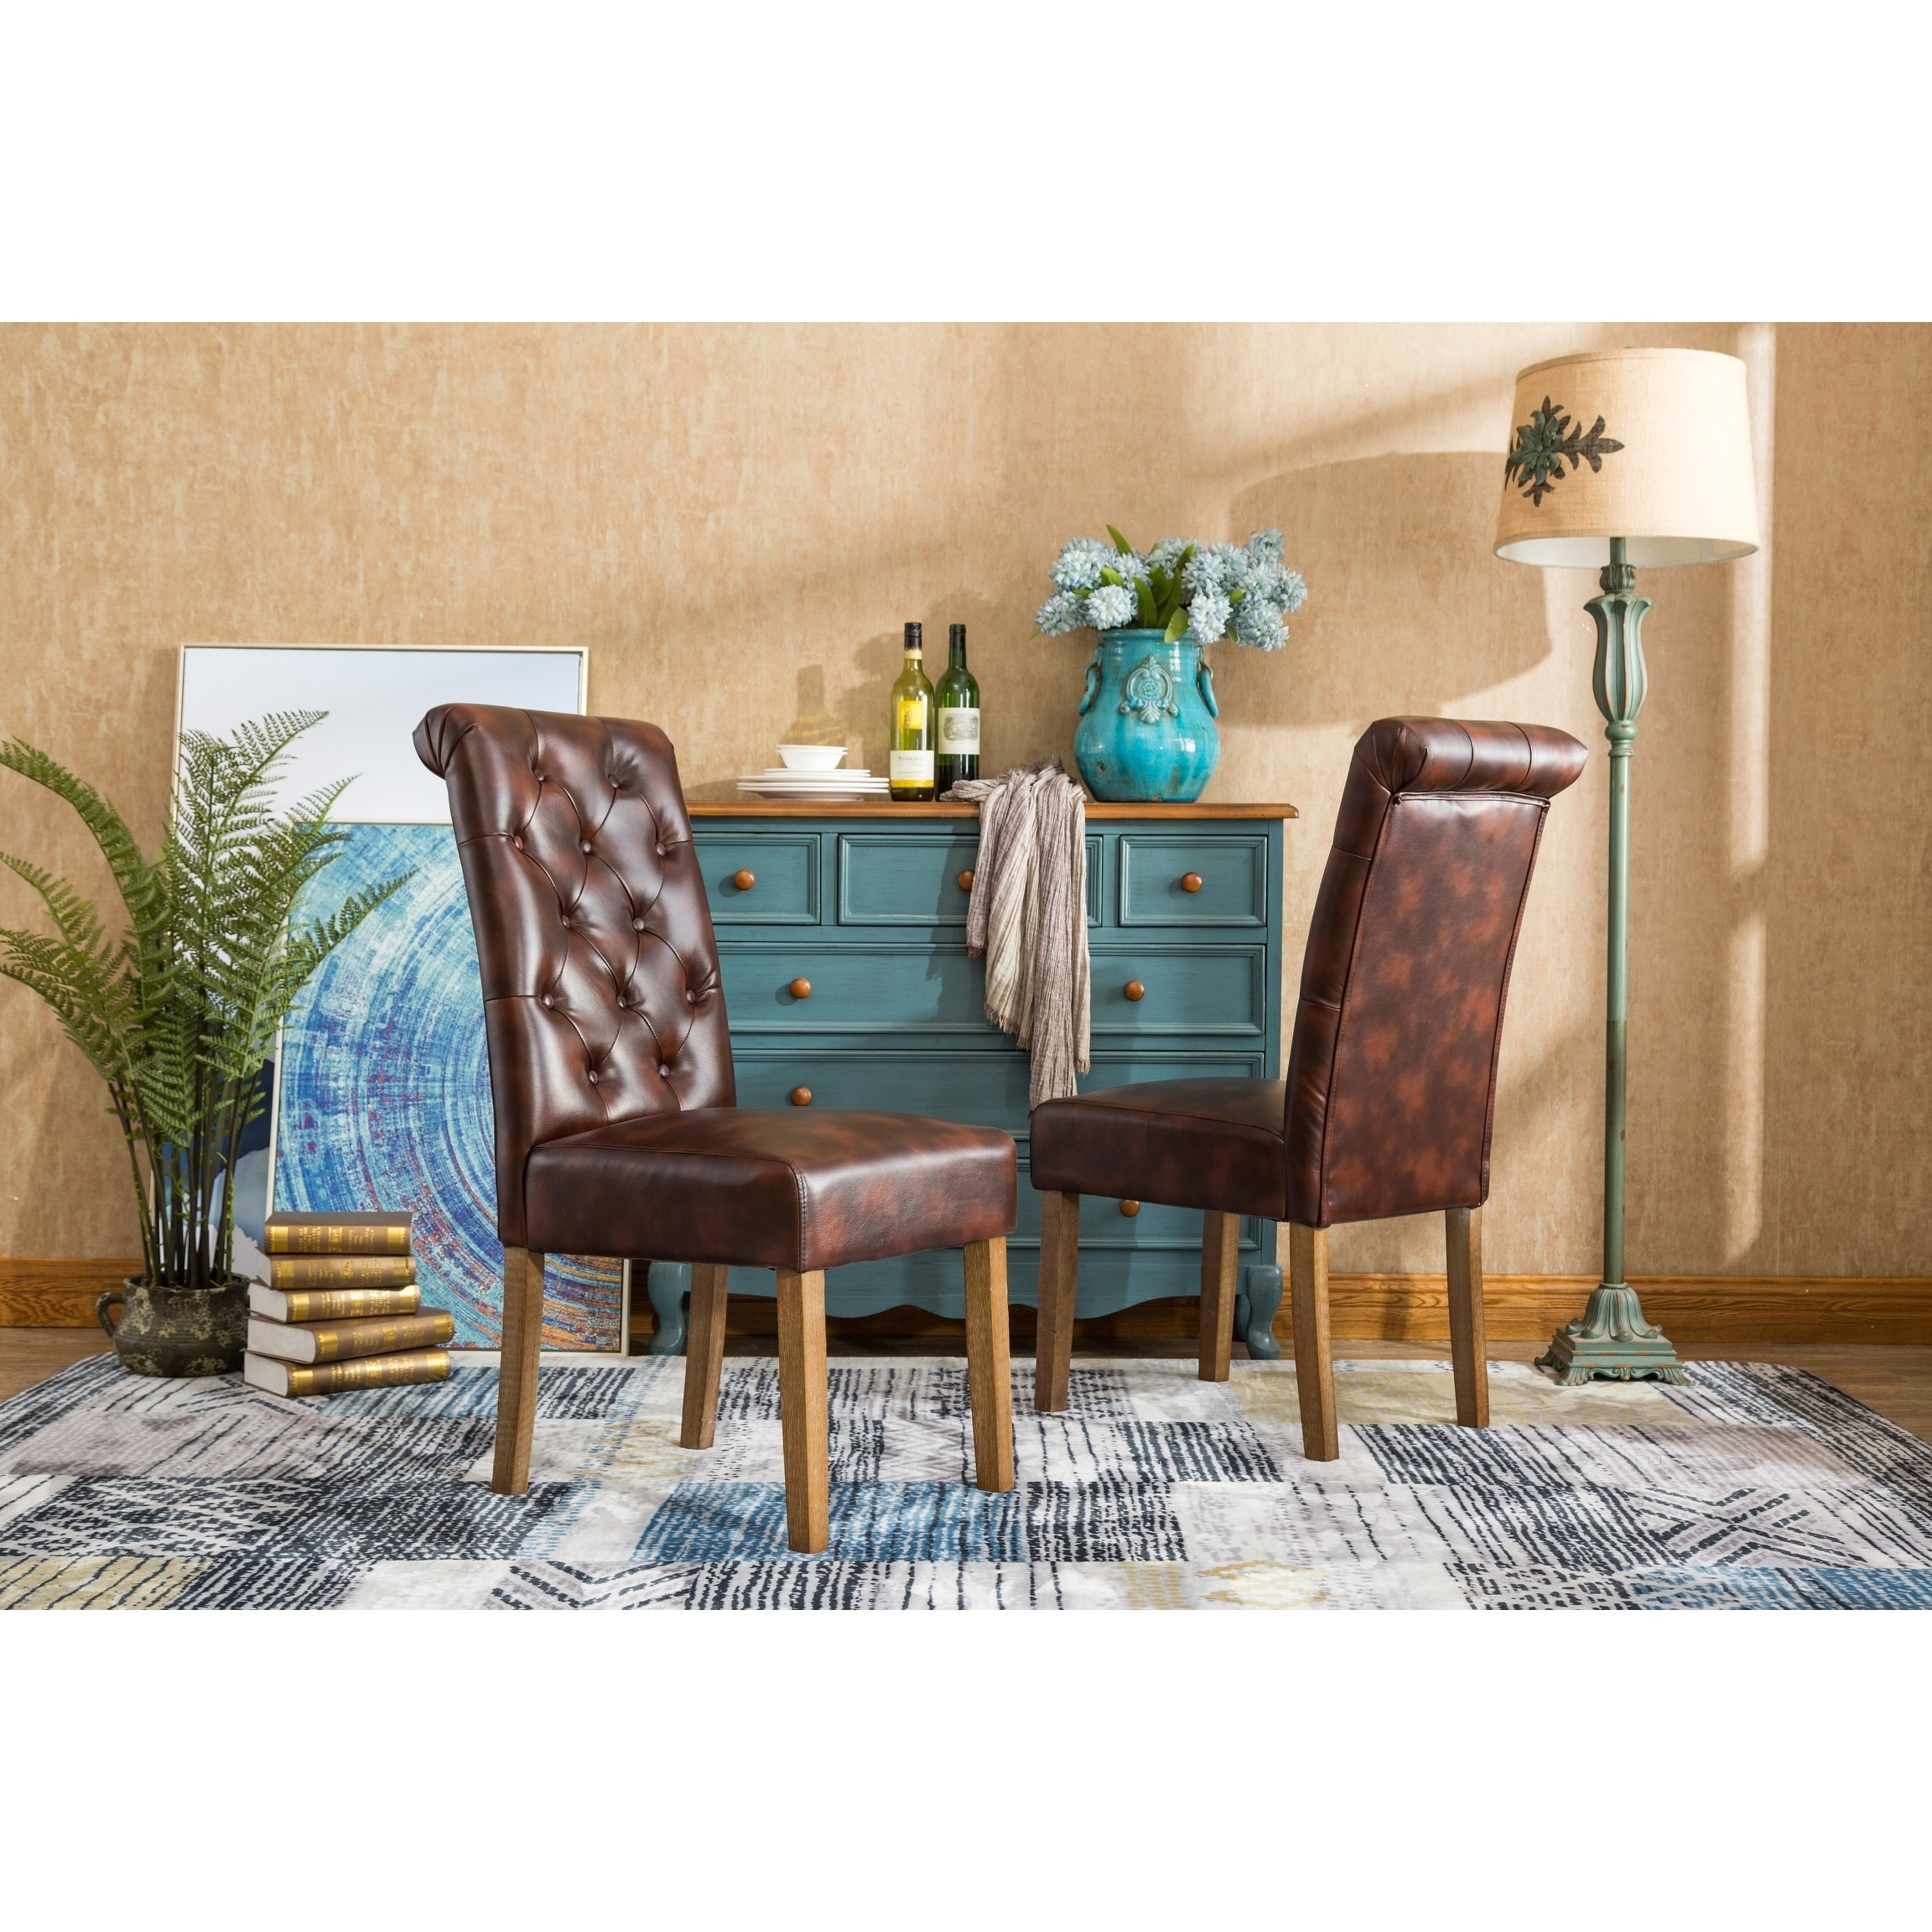 Shop Habit Faux Leather Tufted Parsons Dining Chairs,Set of 2 - Free ...